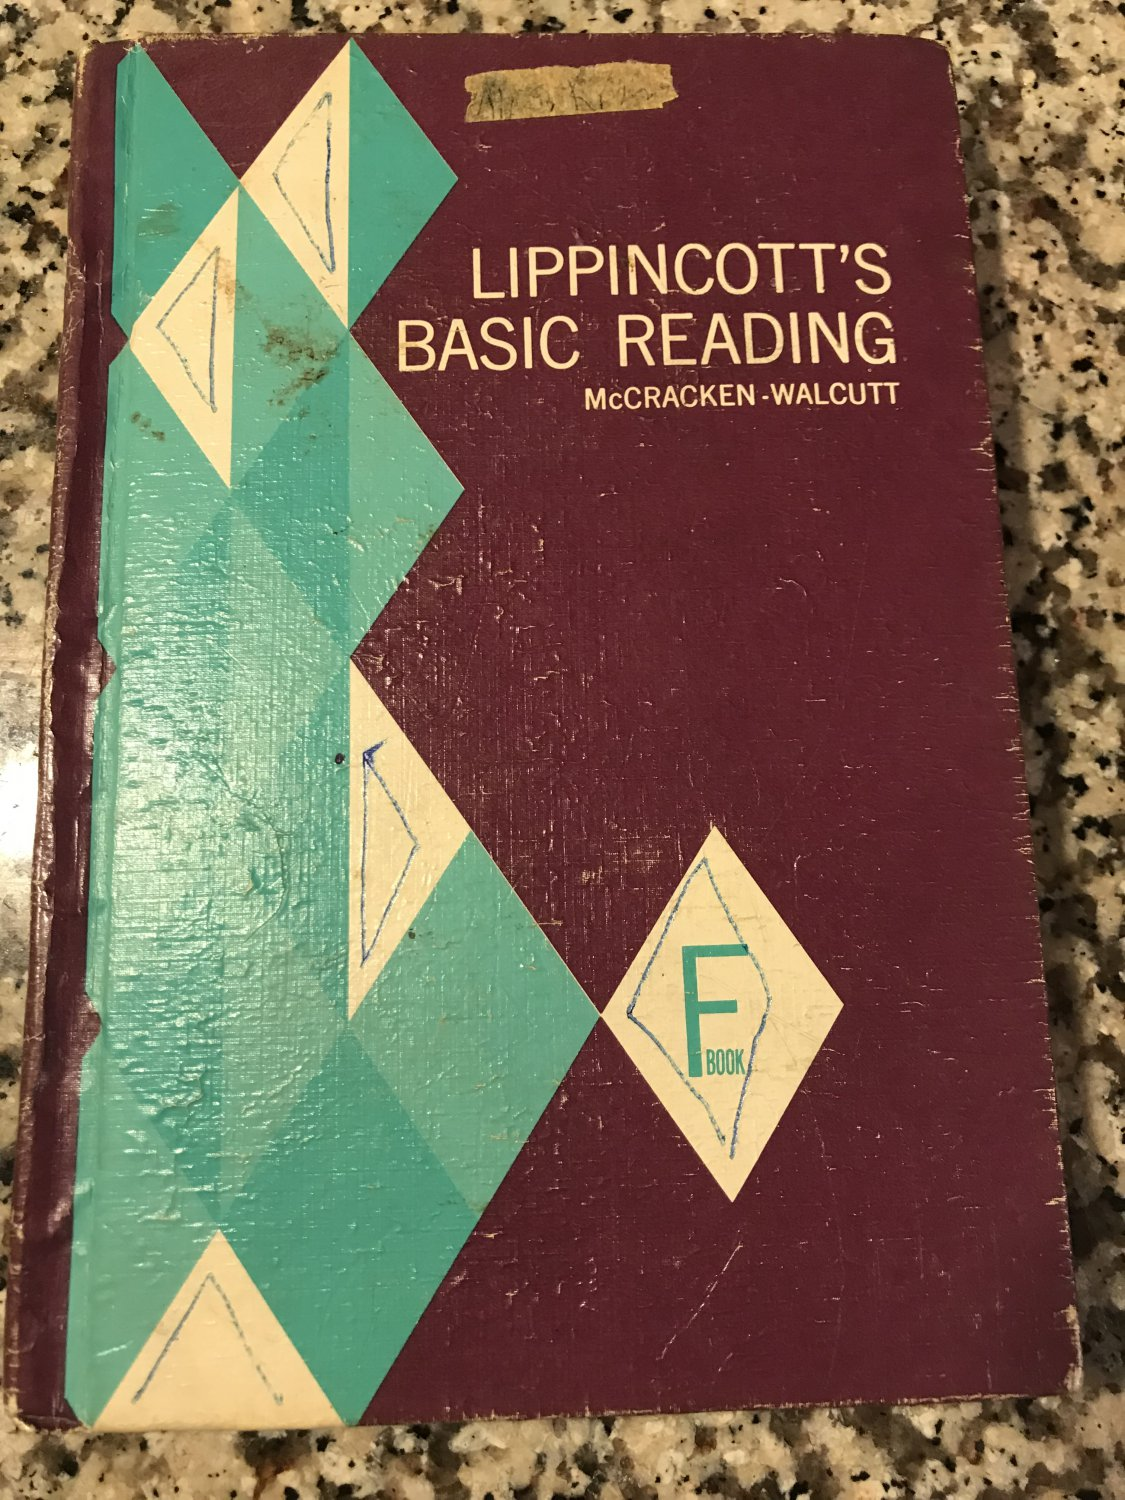 LIPPINCOTT'S BASIC READING [unknown_binding] [Jan 01, 1969]